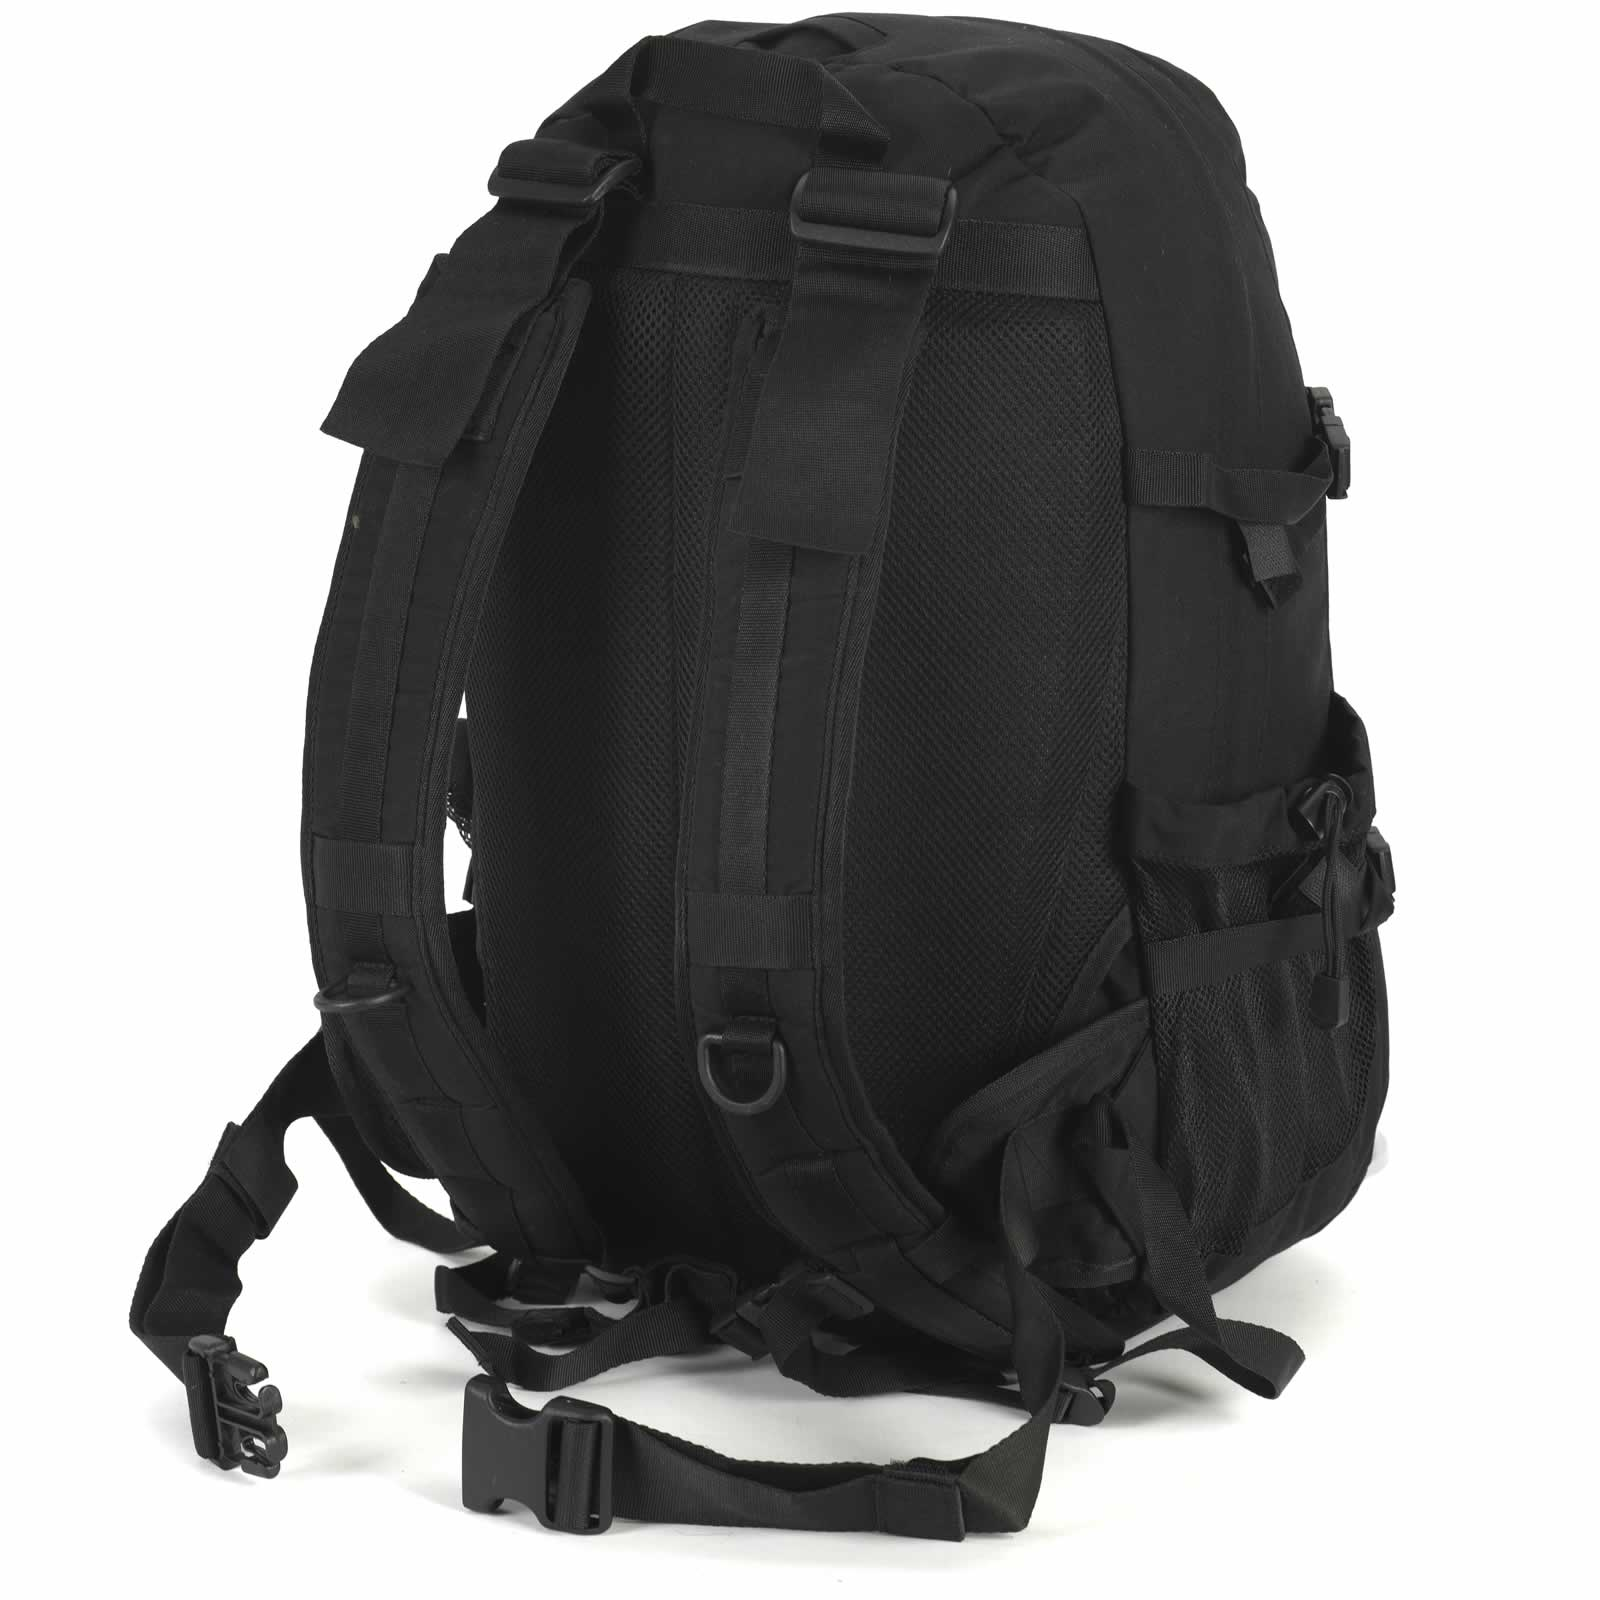 snugpak xocet 35 litre molle rucksack daysack backpack olive green black 35l ebay. Black Bedroom Furniture Sets. Home Design Ideas